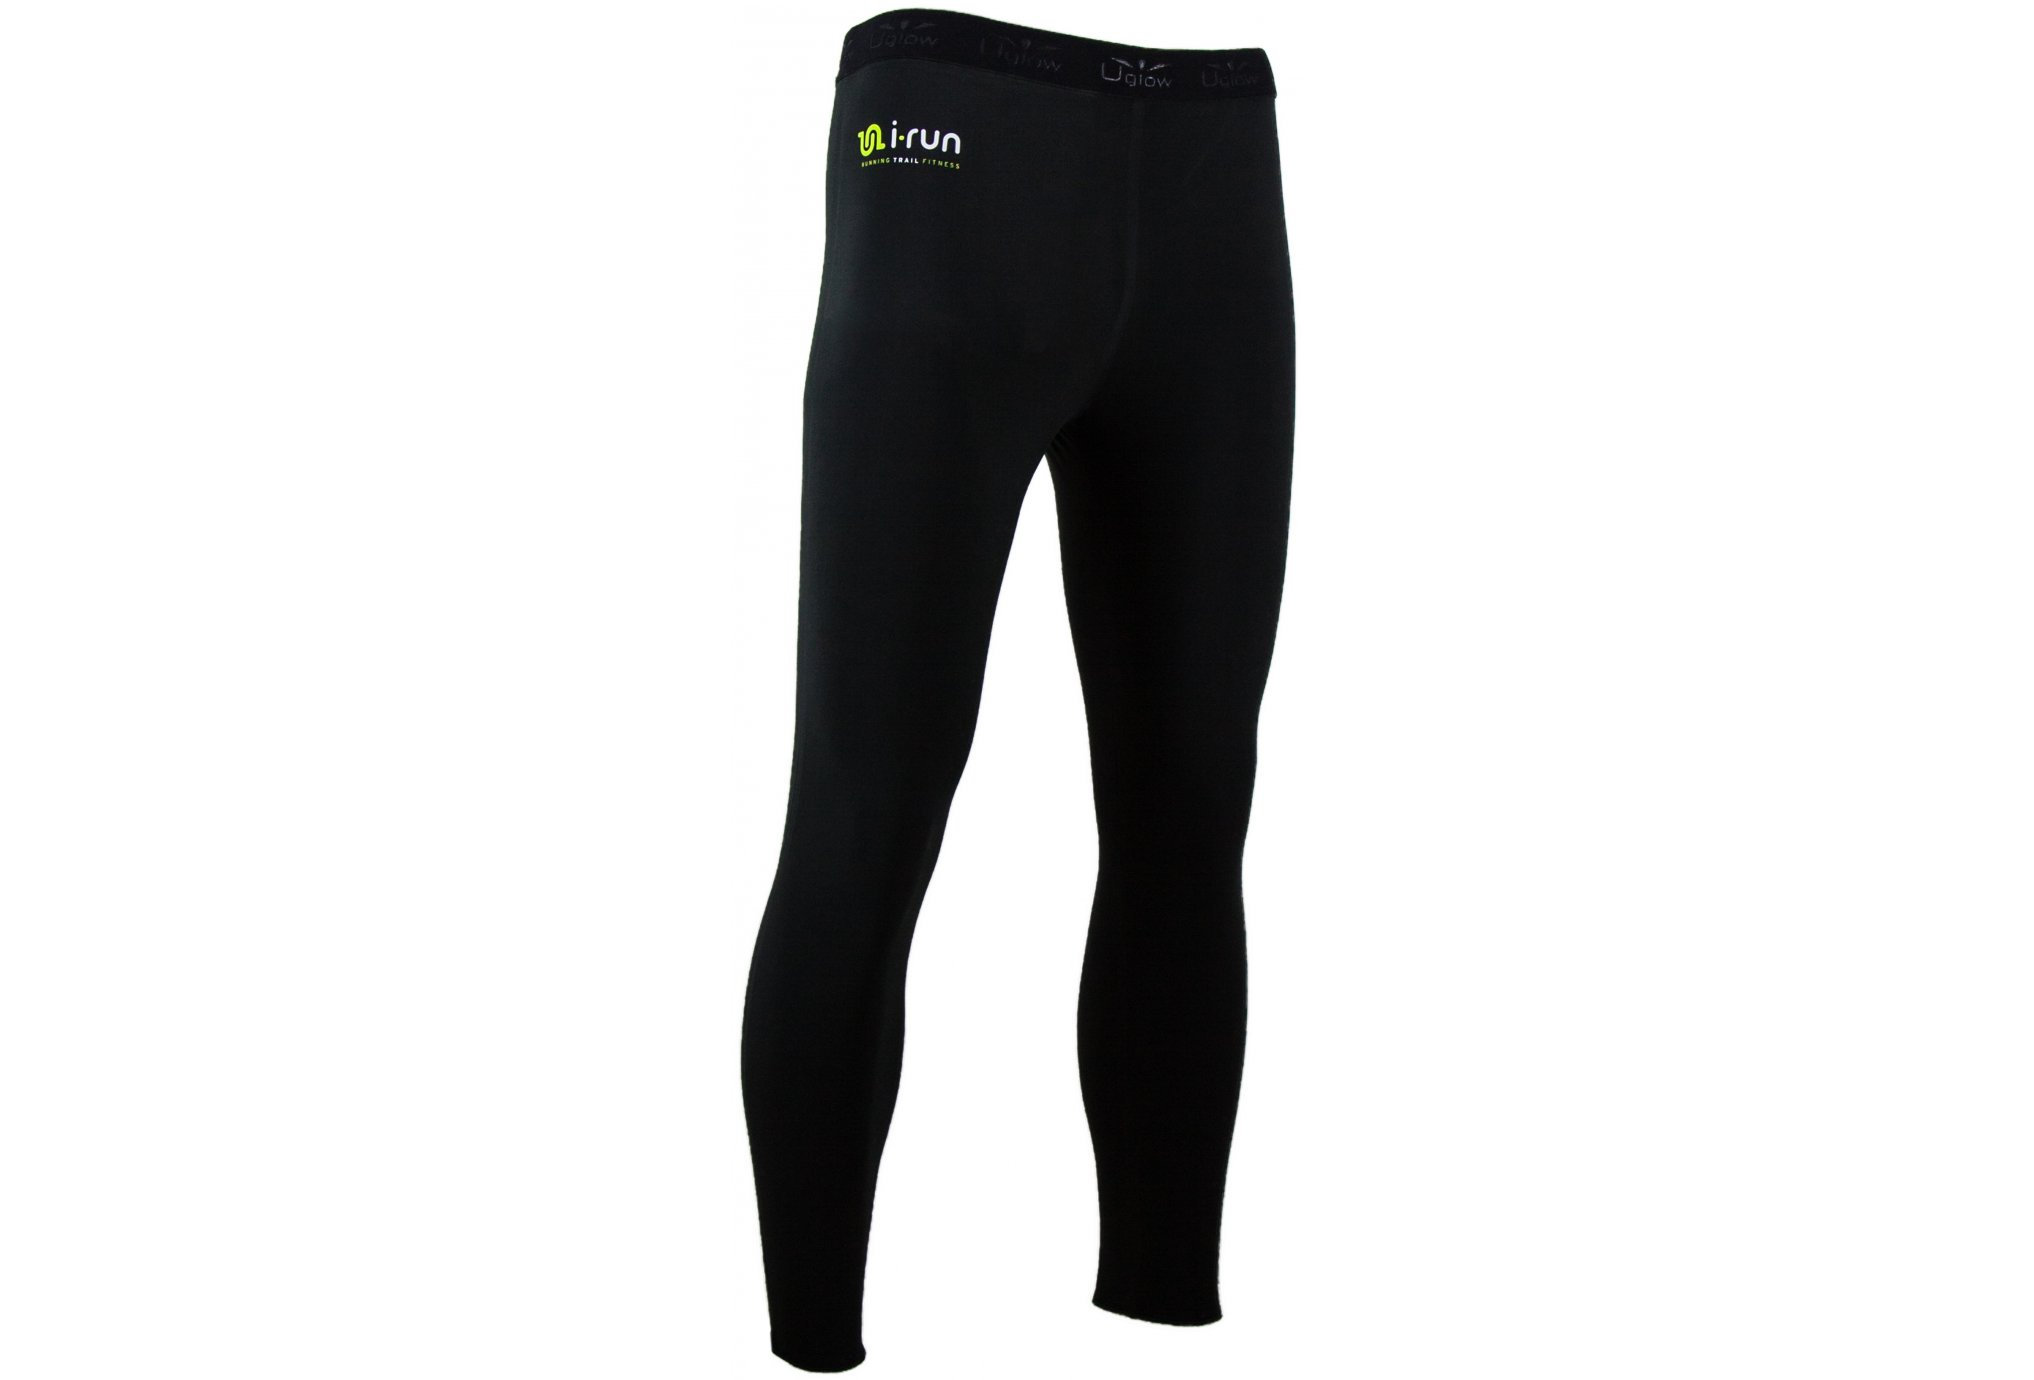 Uglow I-Run Special Base Tight M vêtement running homme